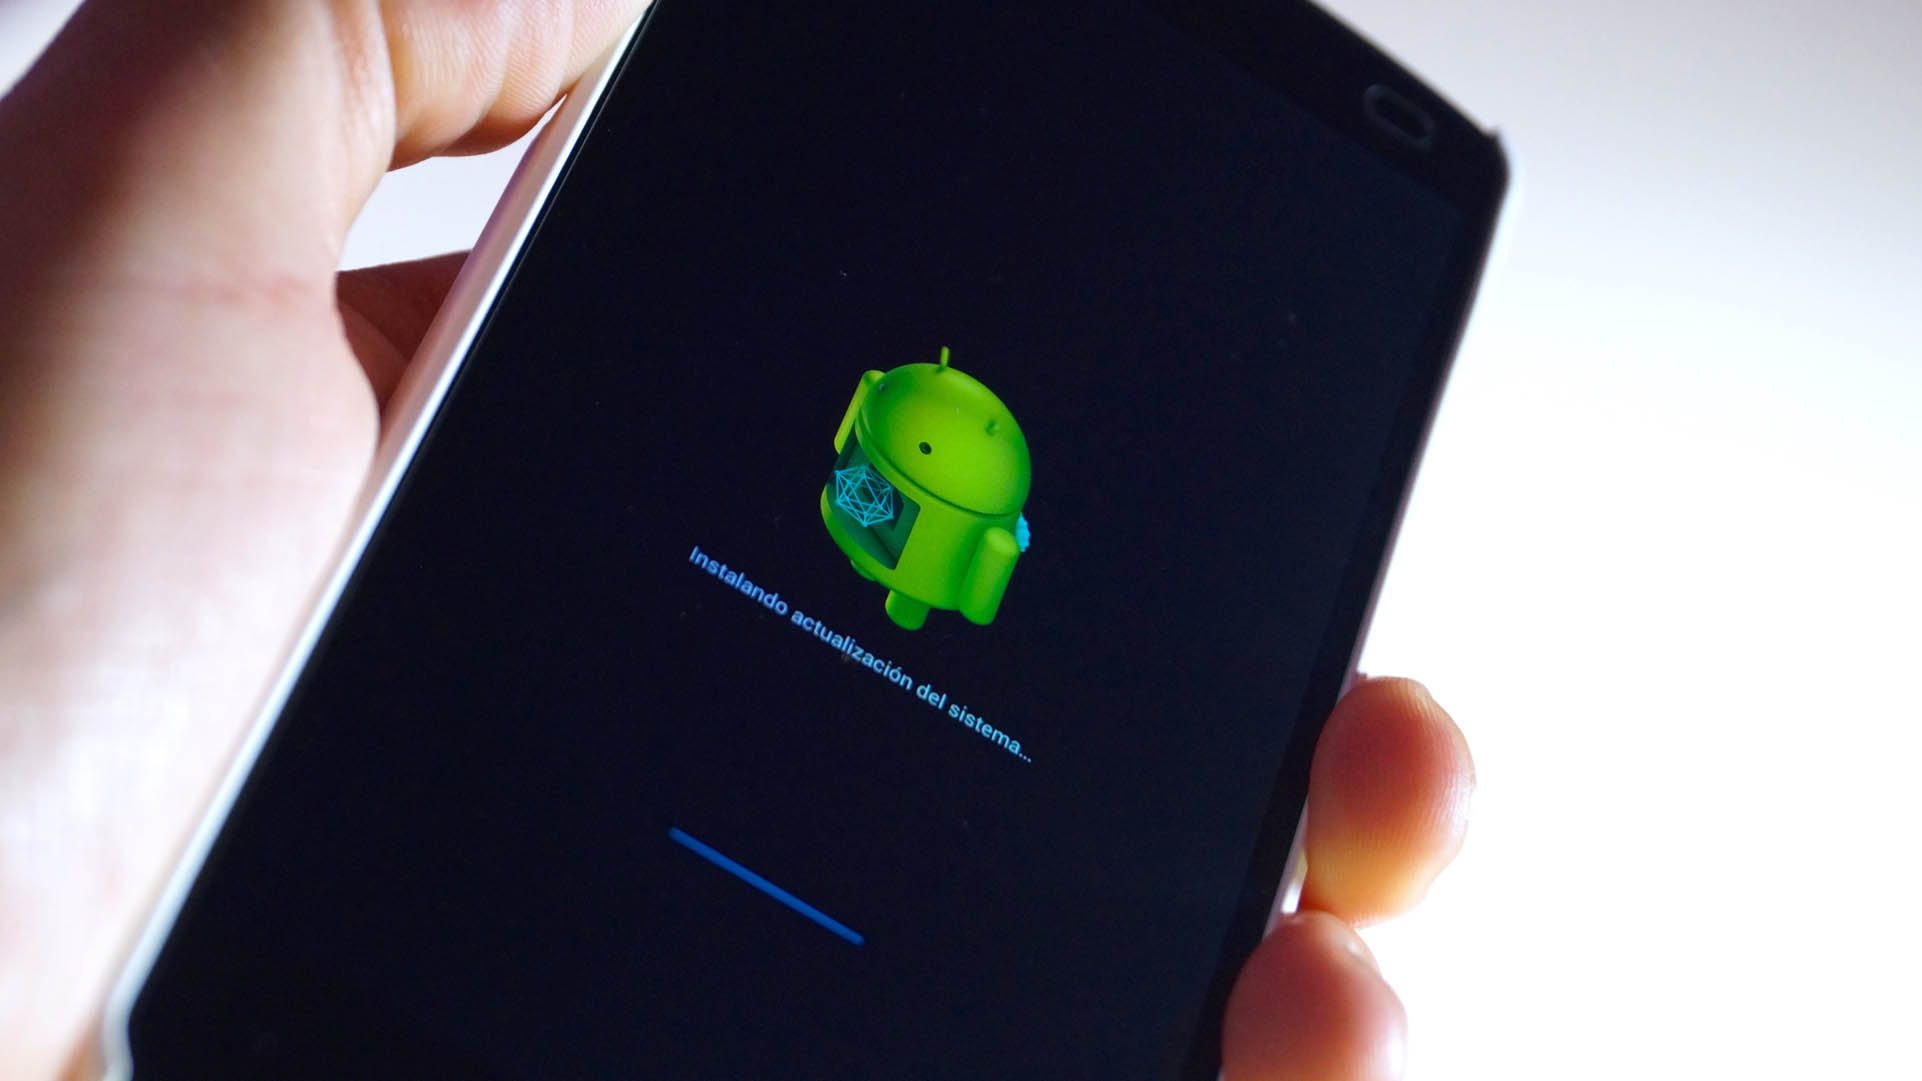 An Android phone in the midst of updating its operating system.